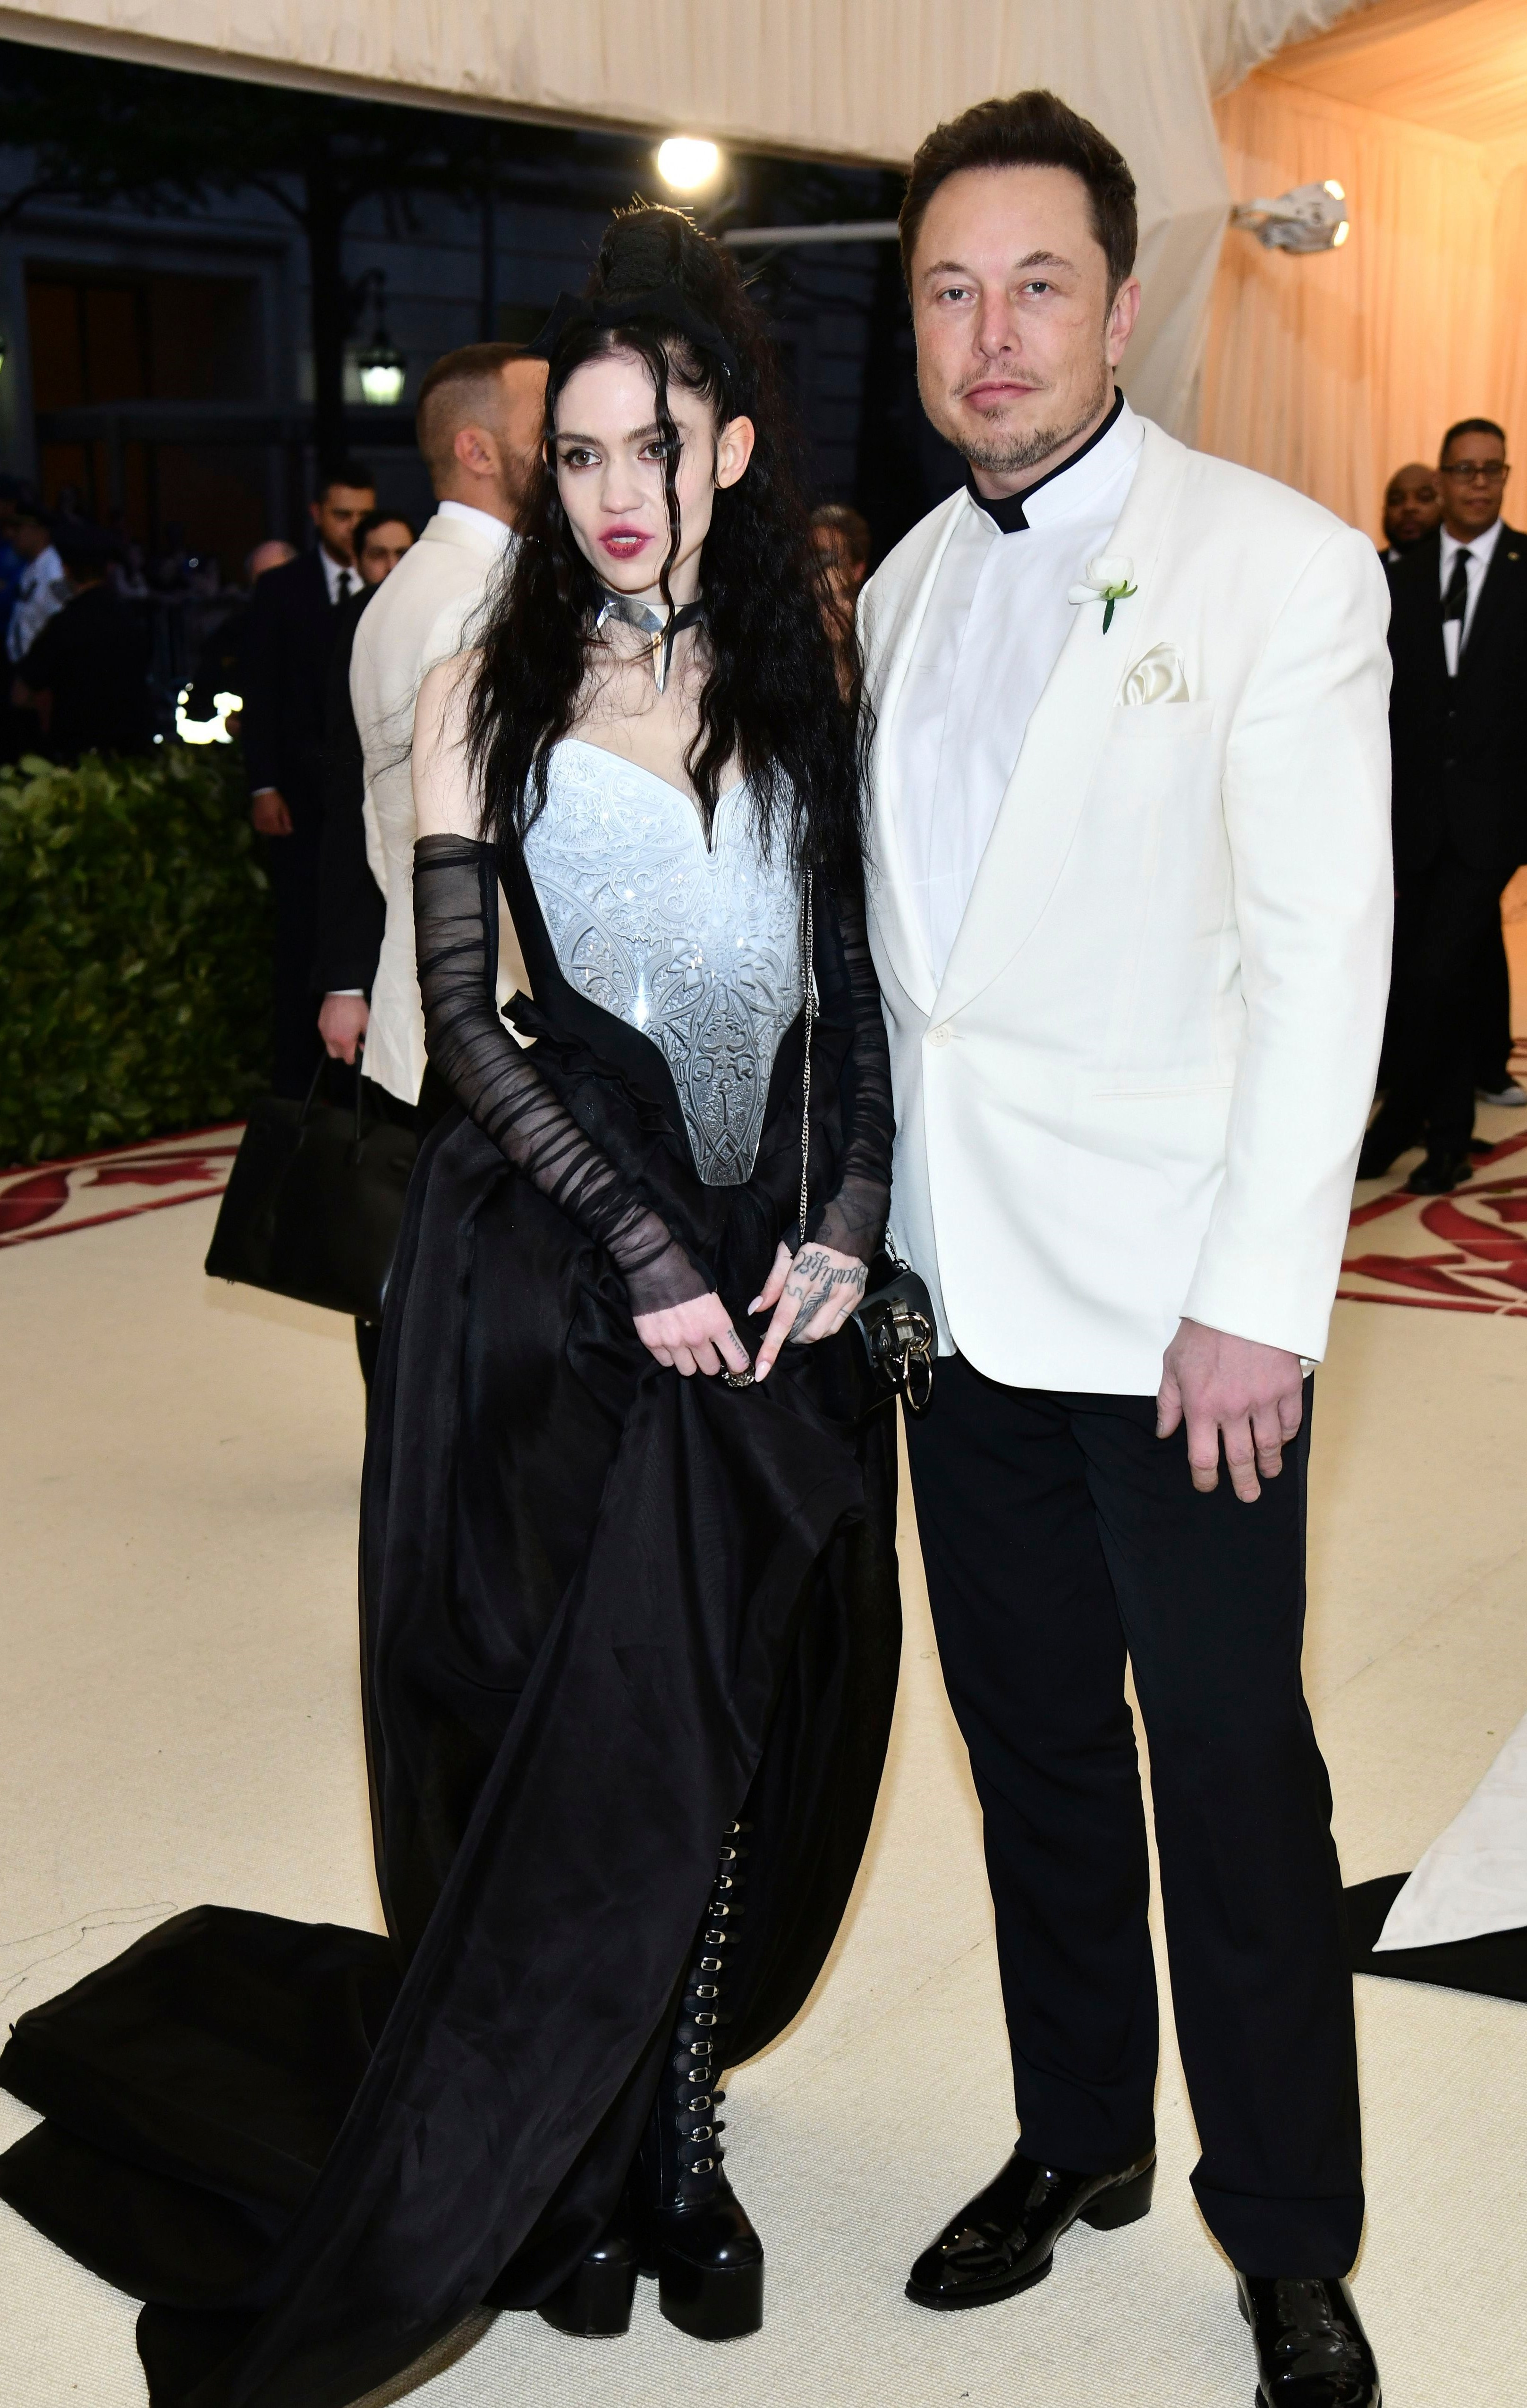 grimes black personals Elon musk quietly dating musician grimes (pagesixcom)  [black heart emoji] legalize dueling [robot emoji] _i pledge allegiance 2 the robot overlords .